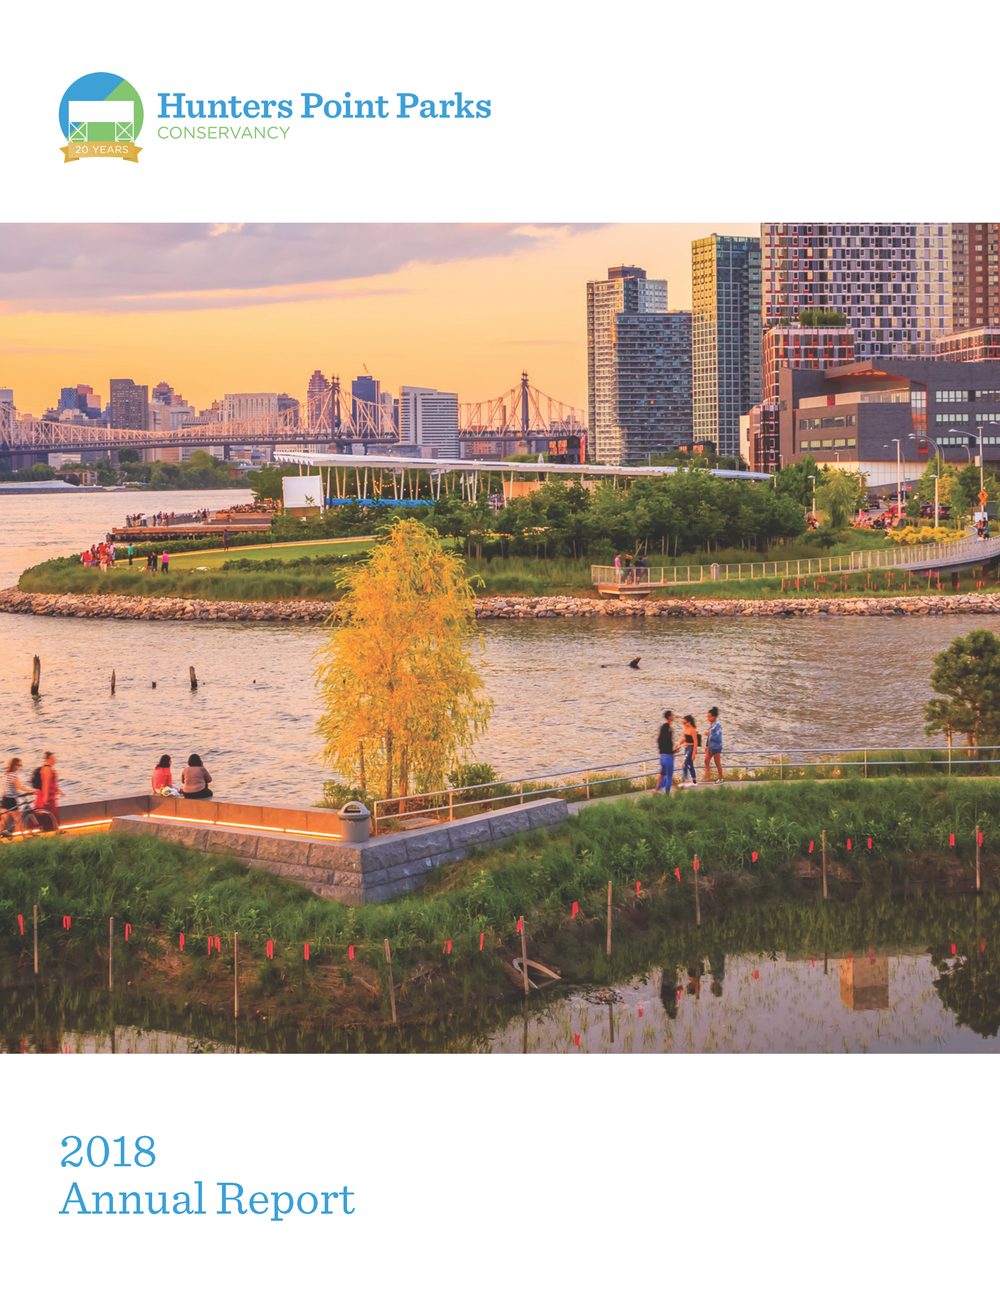 HPPC_AnnualReport-2018_digital_Page_01.png